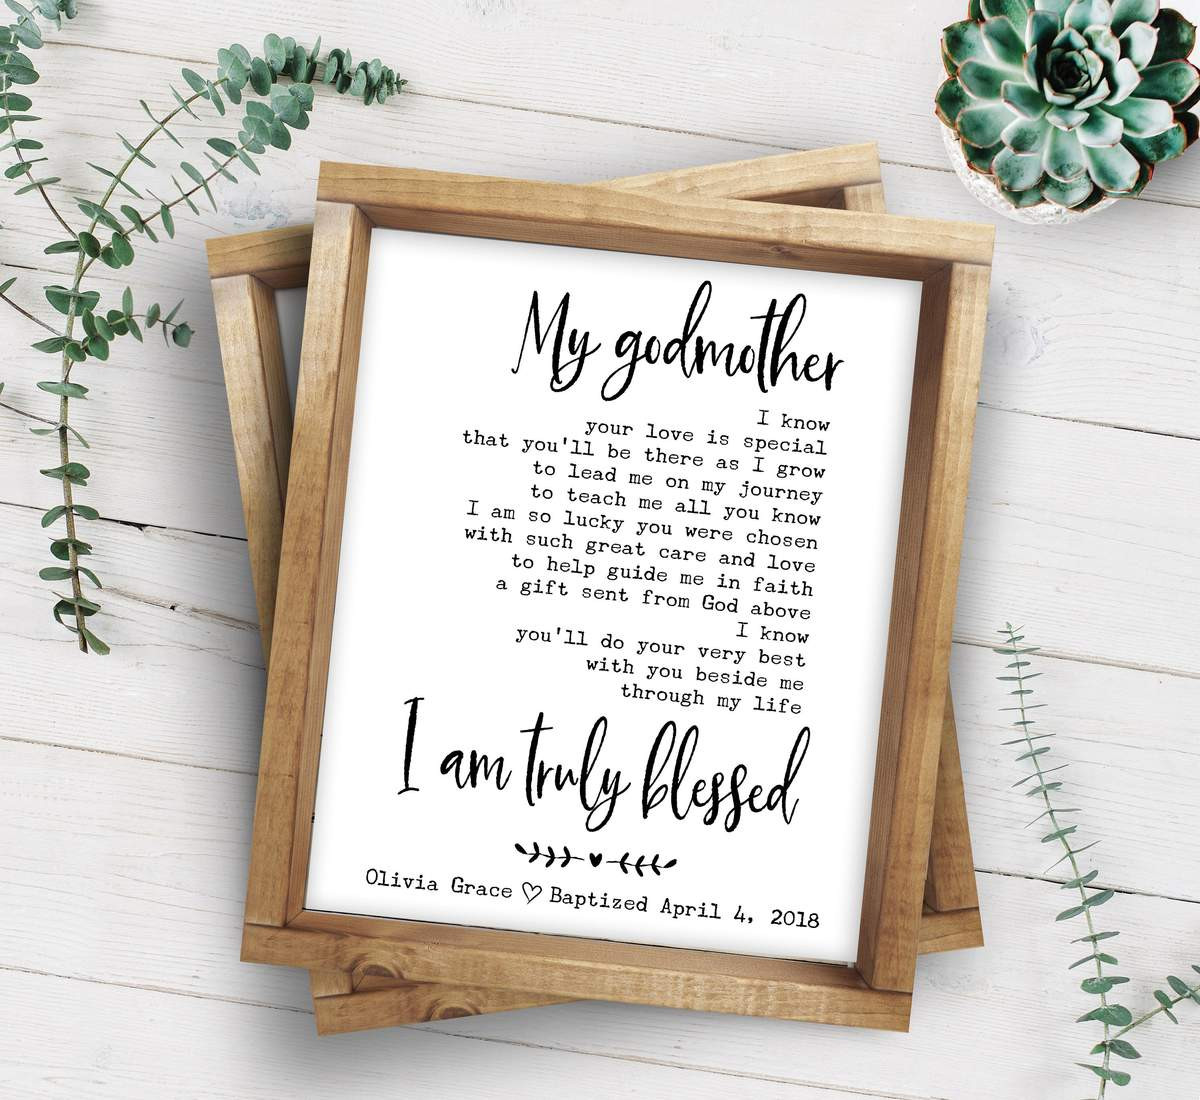 Godmother Quotes  Godmother Poem Godmother Christening Gift